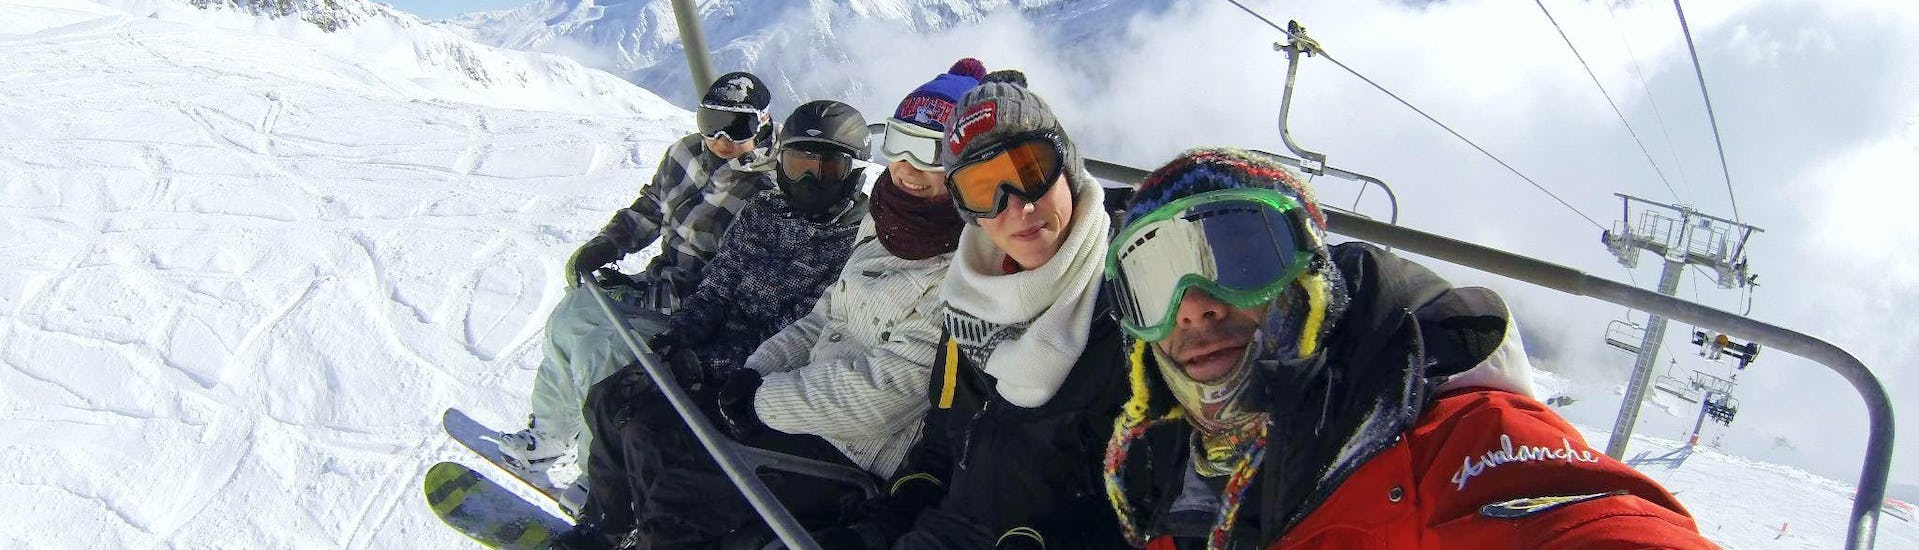 A group of snowboarders is sitting in a chairlift bringing them to the top of the mountain where they will start their Snowboarding Lessons for Adults - All Levels with the ESF Chamonix.